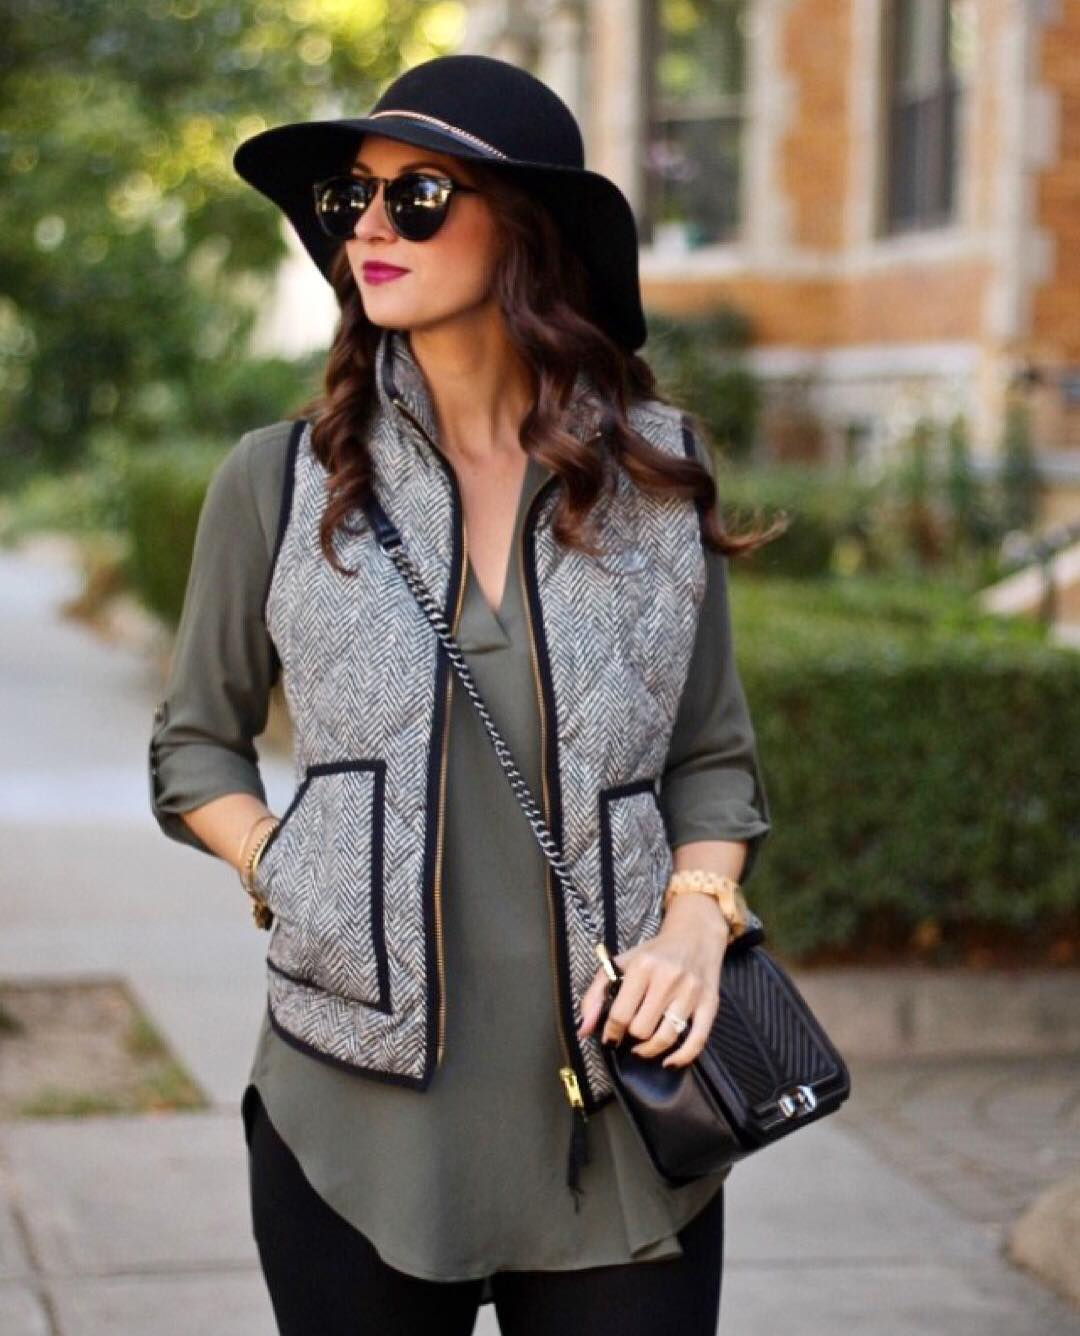 Fall sale alert! This puffervest and olive blouse are bothhellip